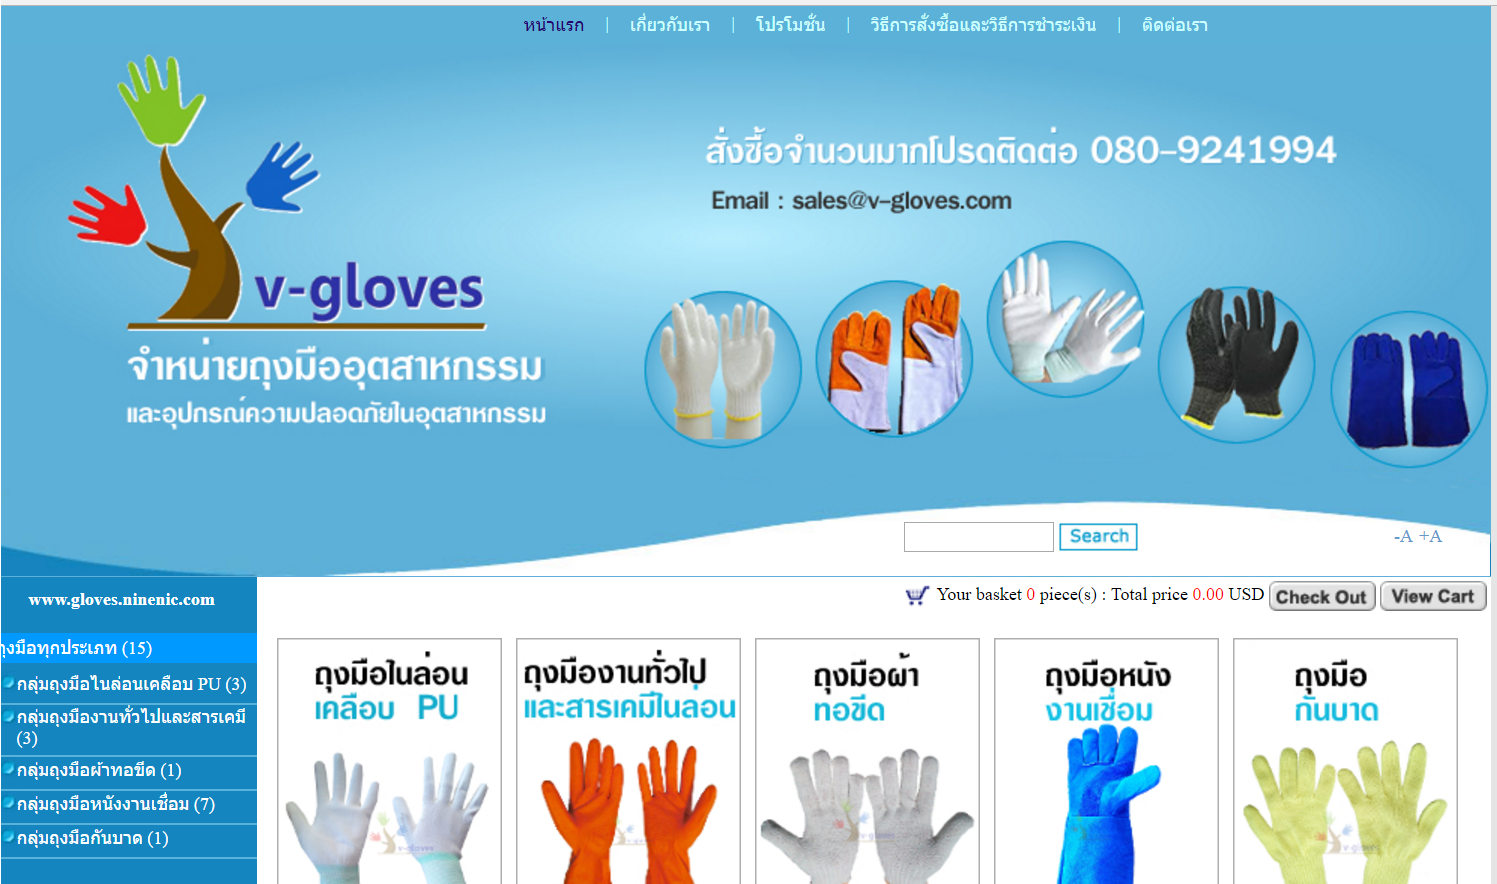 gloves.ninenic.com